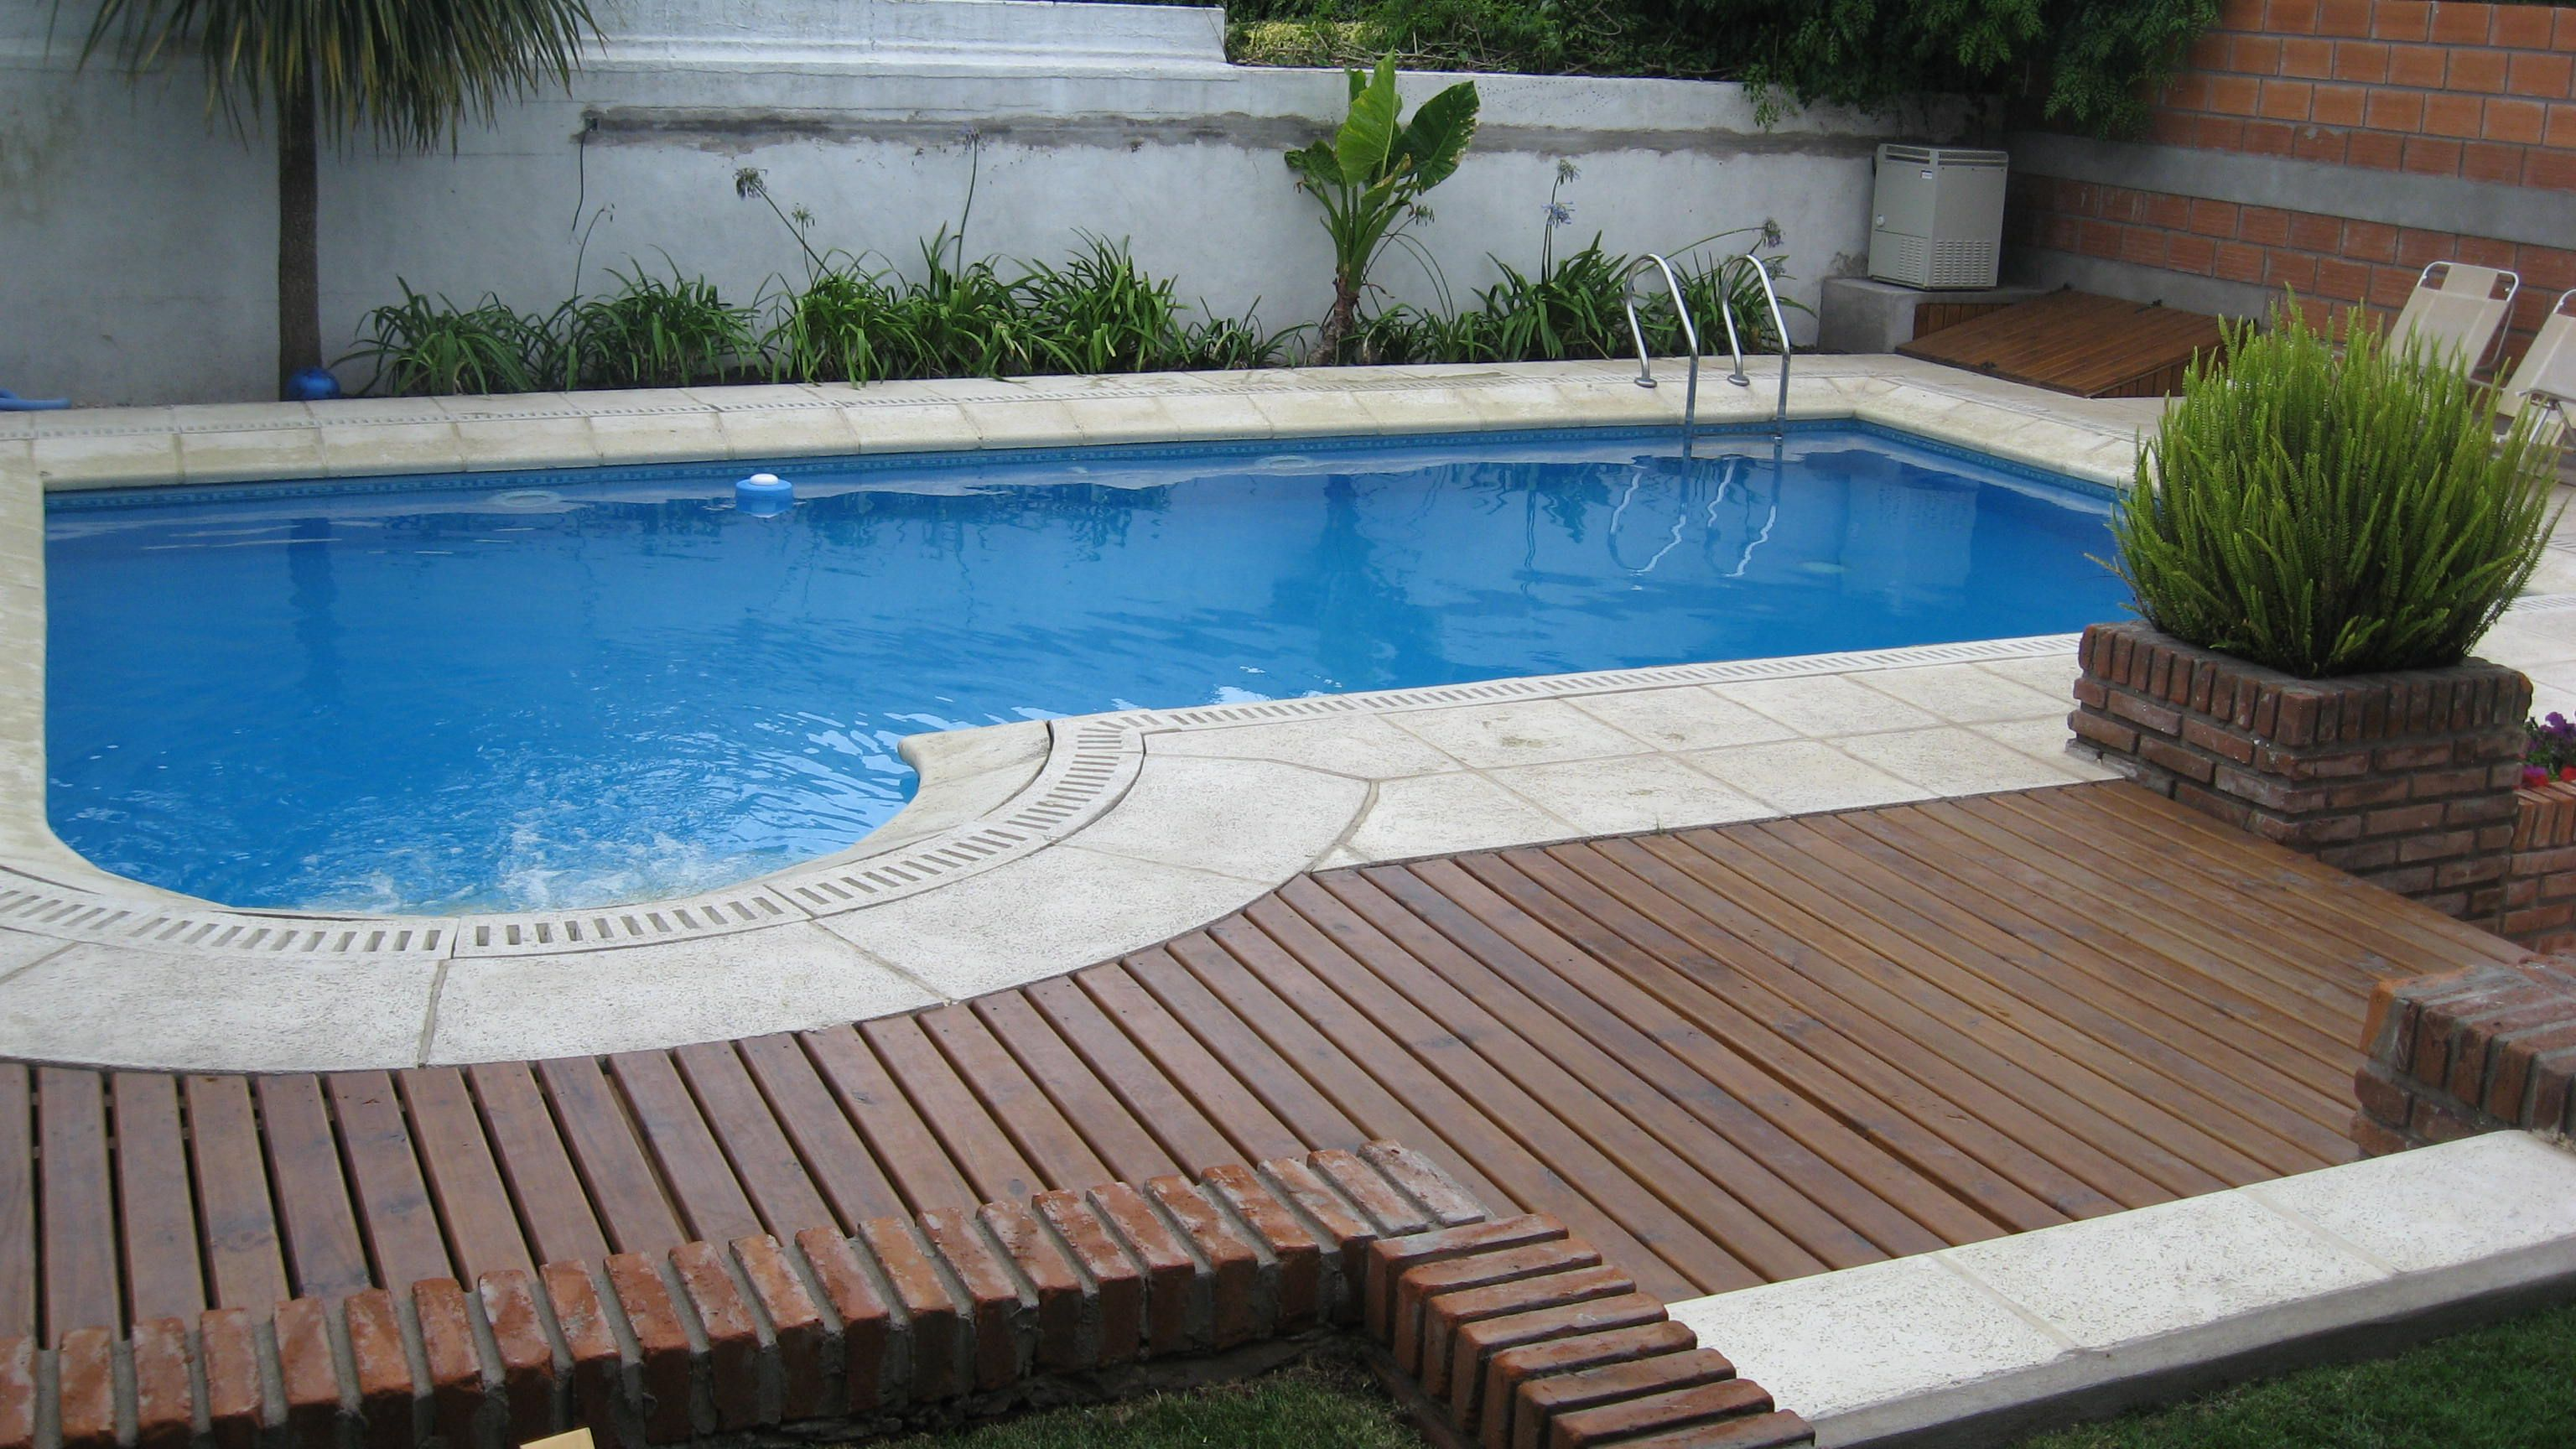 Deck de madera y piscina piscina con deck pinterest for Piscina que se esconde